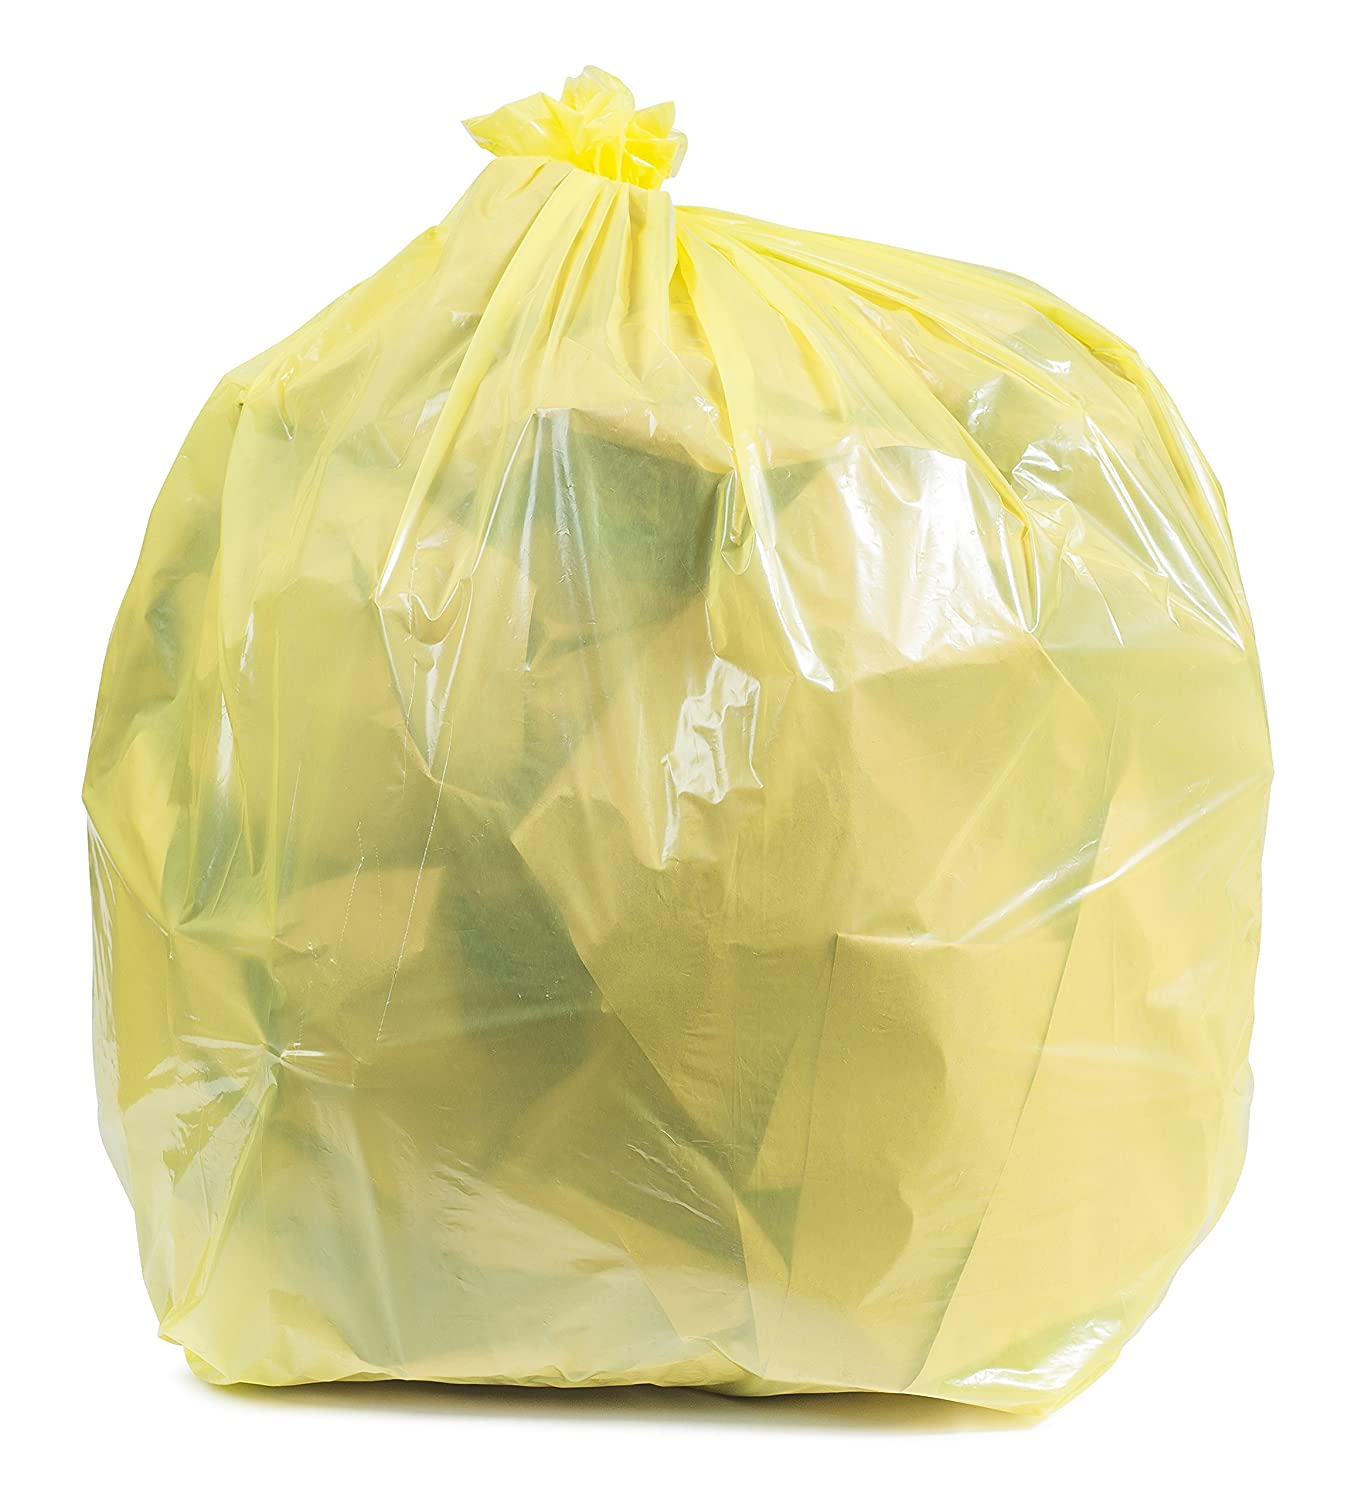 Plasticplace Green Trash Bags, 12-16 Gallon 250 / Case 1.0 Mil